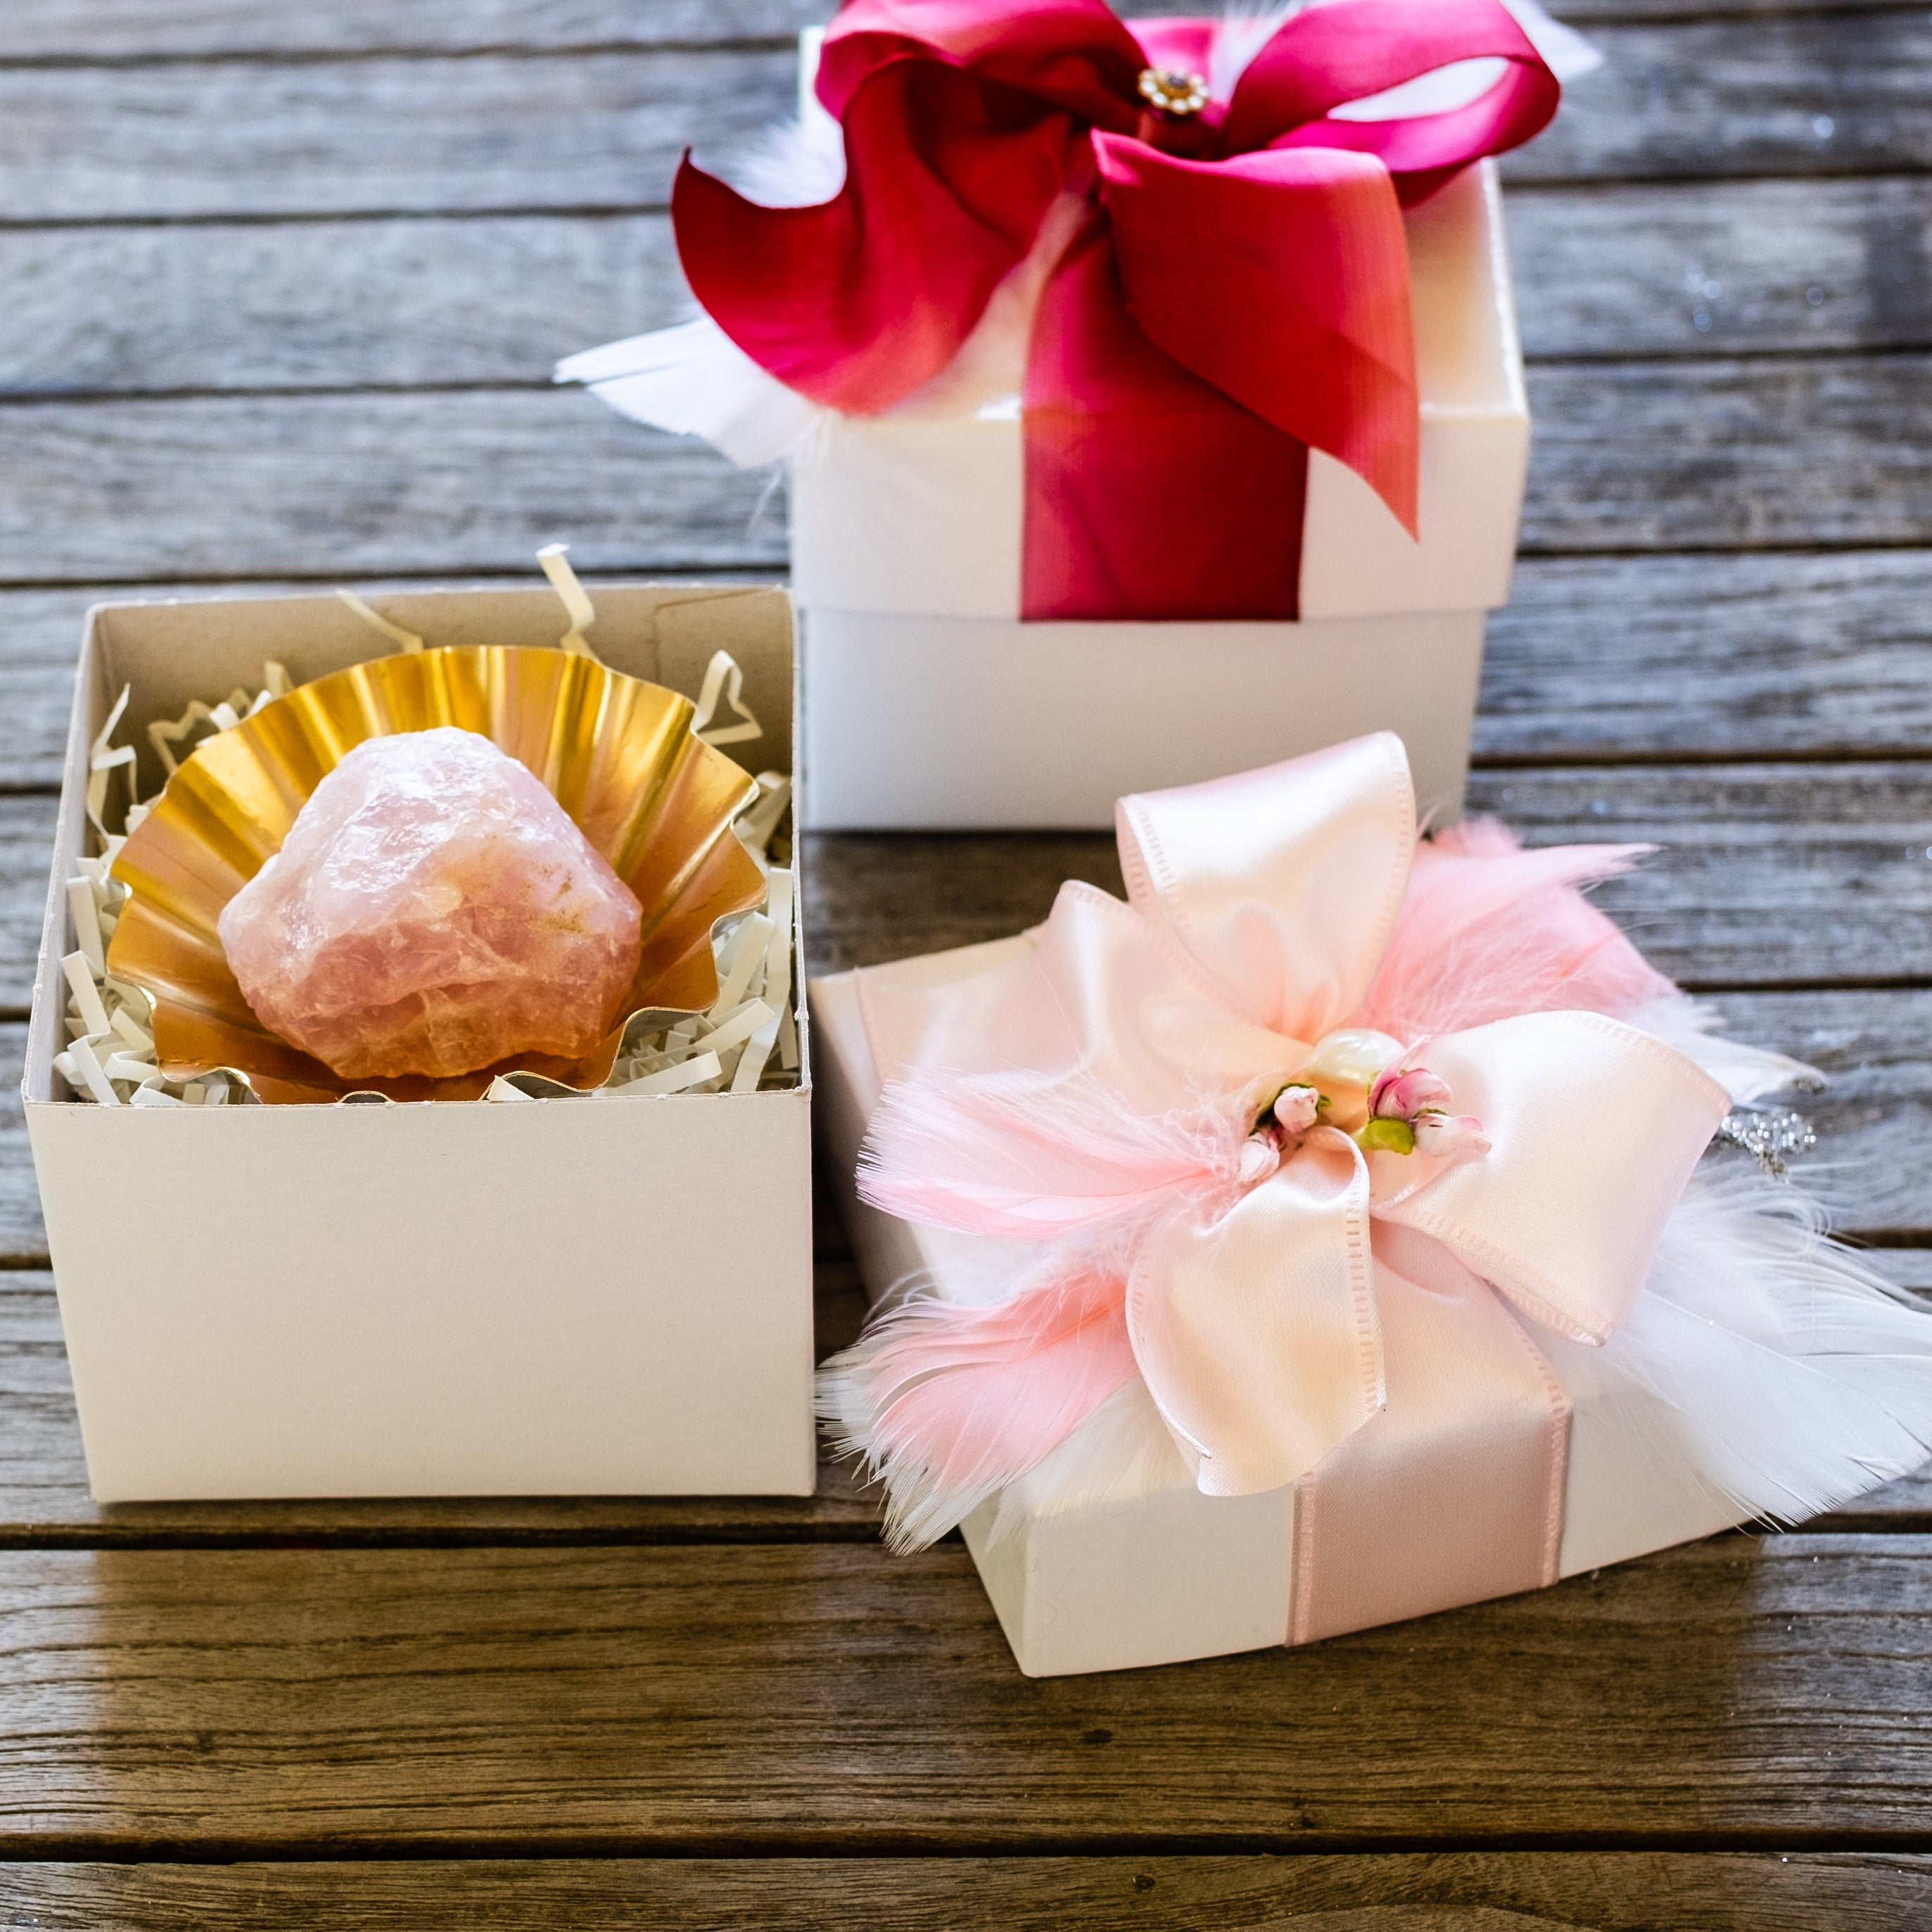 rock candy gift set by Mapleton Drive #rosequartz